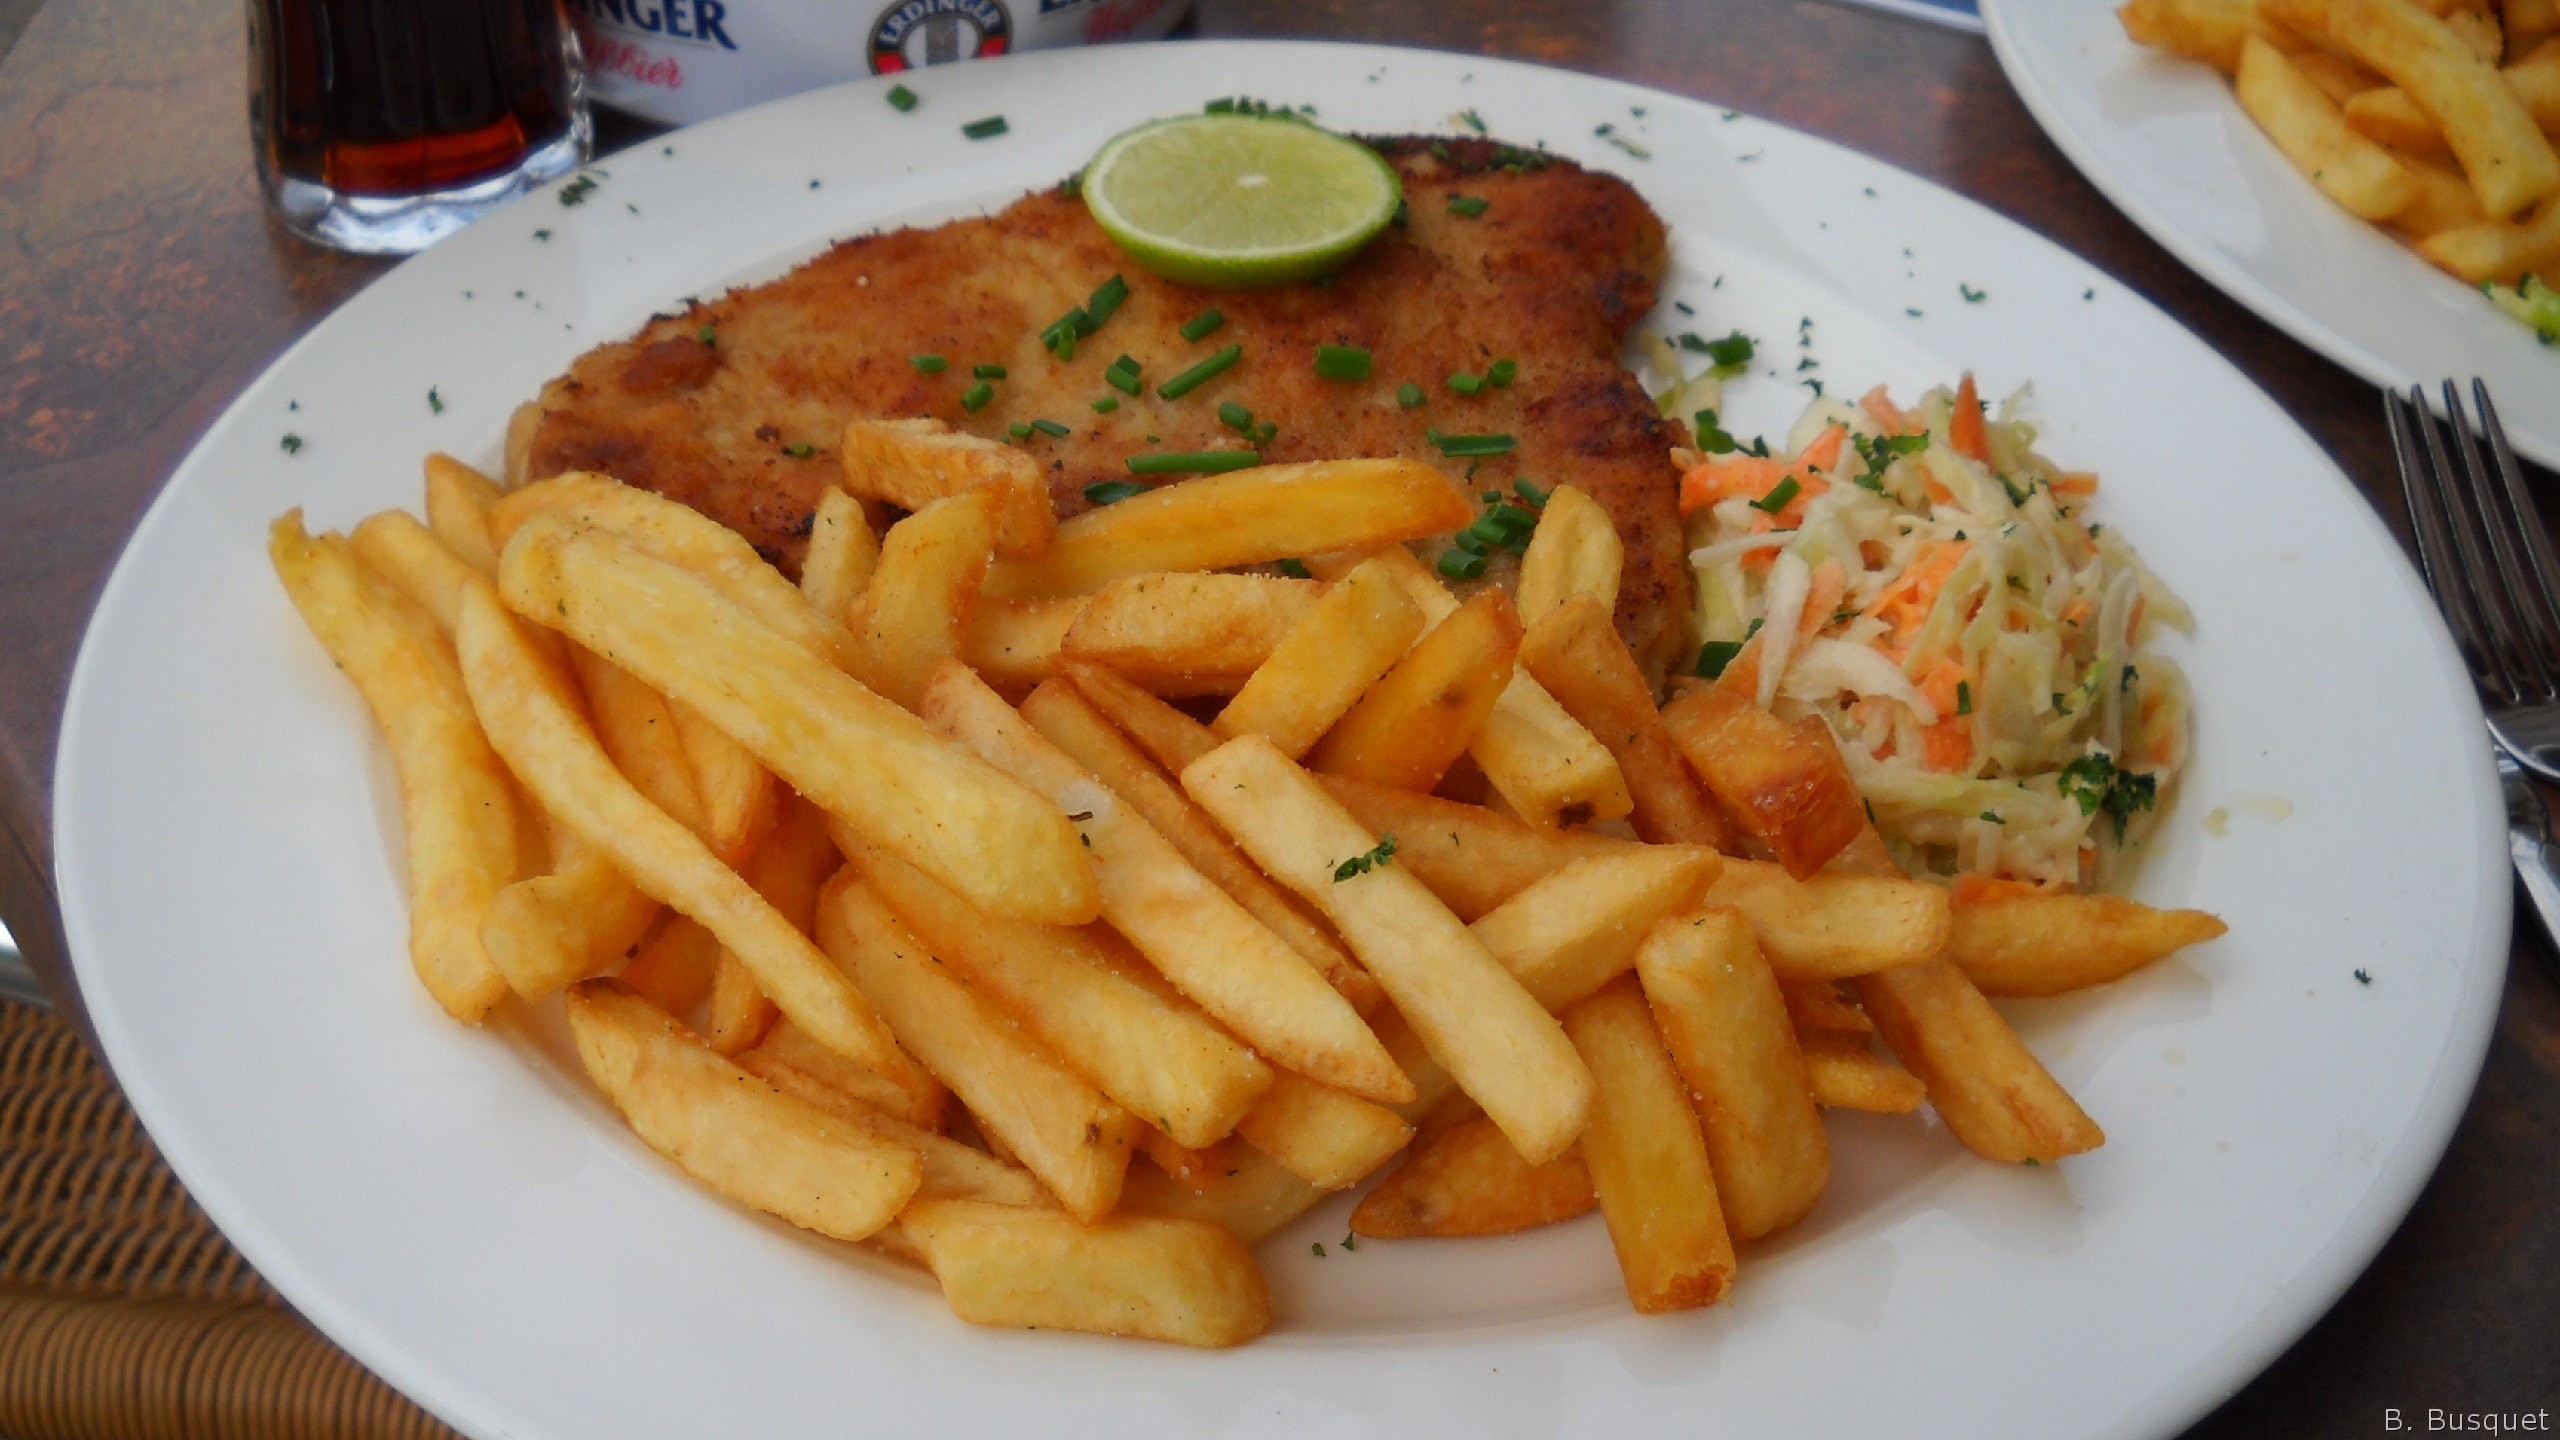 ... got a big plate with a Wiener schnitzel, french fries and some salad